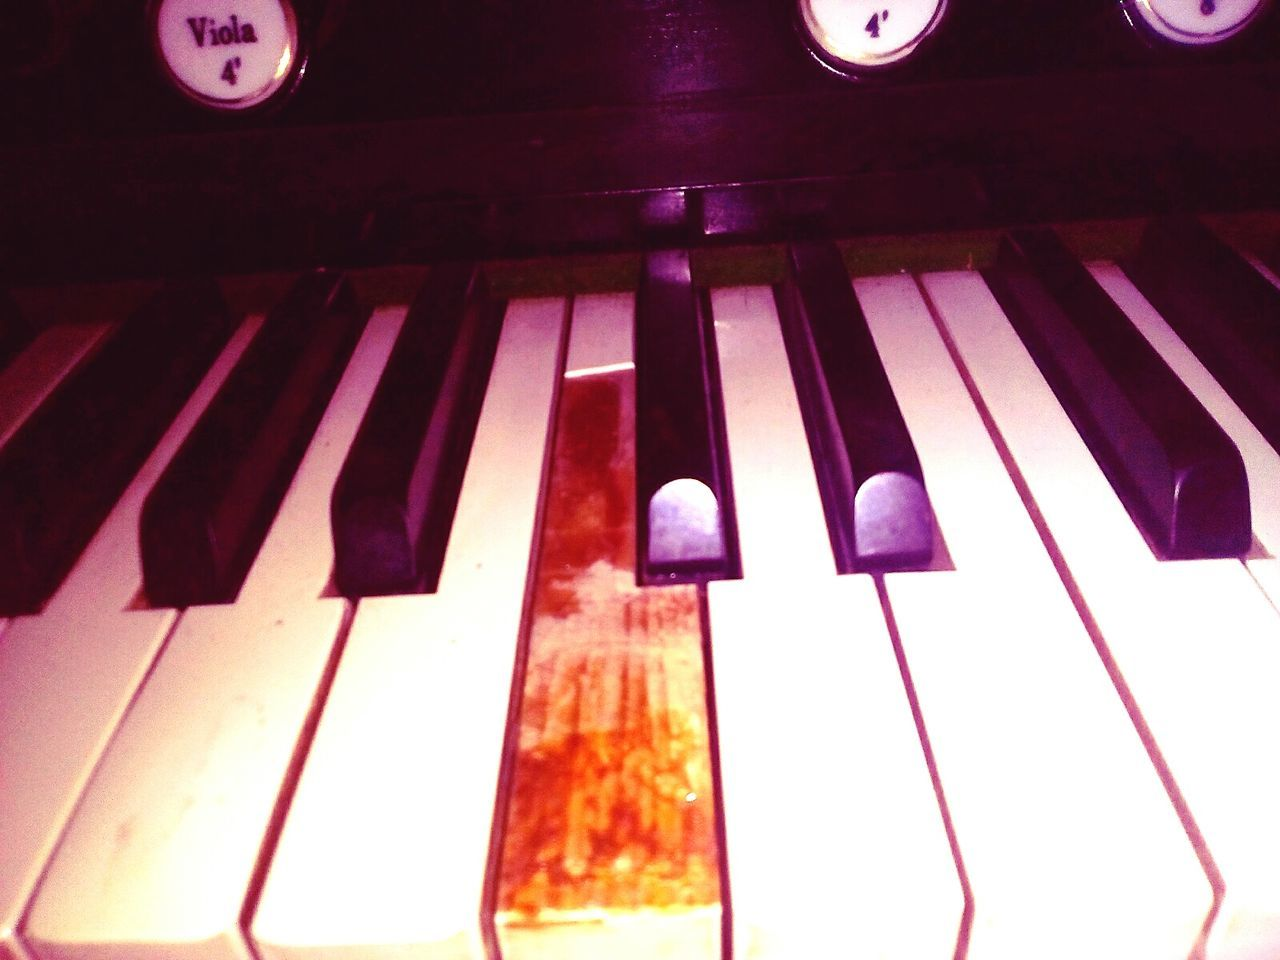 Piano Key Musical Instrument Music Piano Arts Culture And Entertainment Antique Keyboard Instrument Musical Equipment No People Close-up Indoors  Classical Music Church Music Vintage Style Alt Orgel Day Indoors  Missing Key